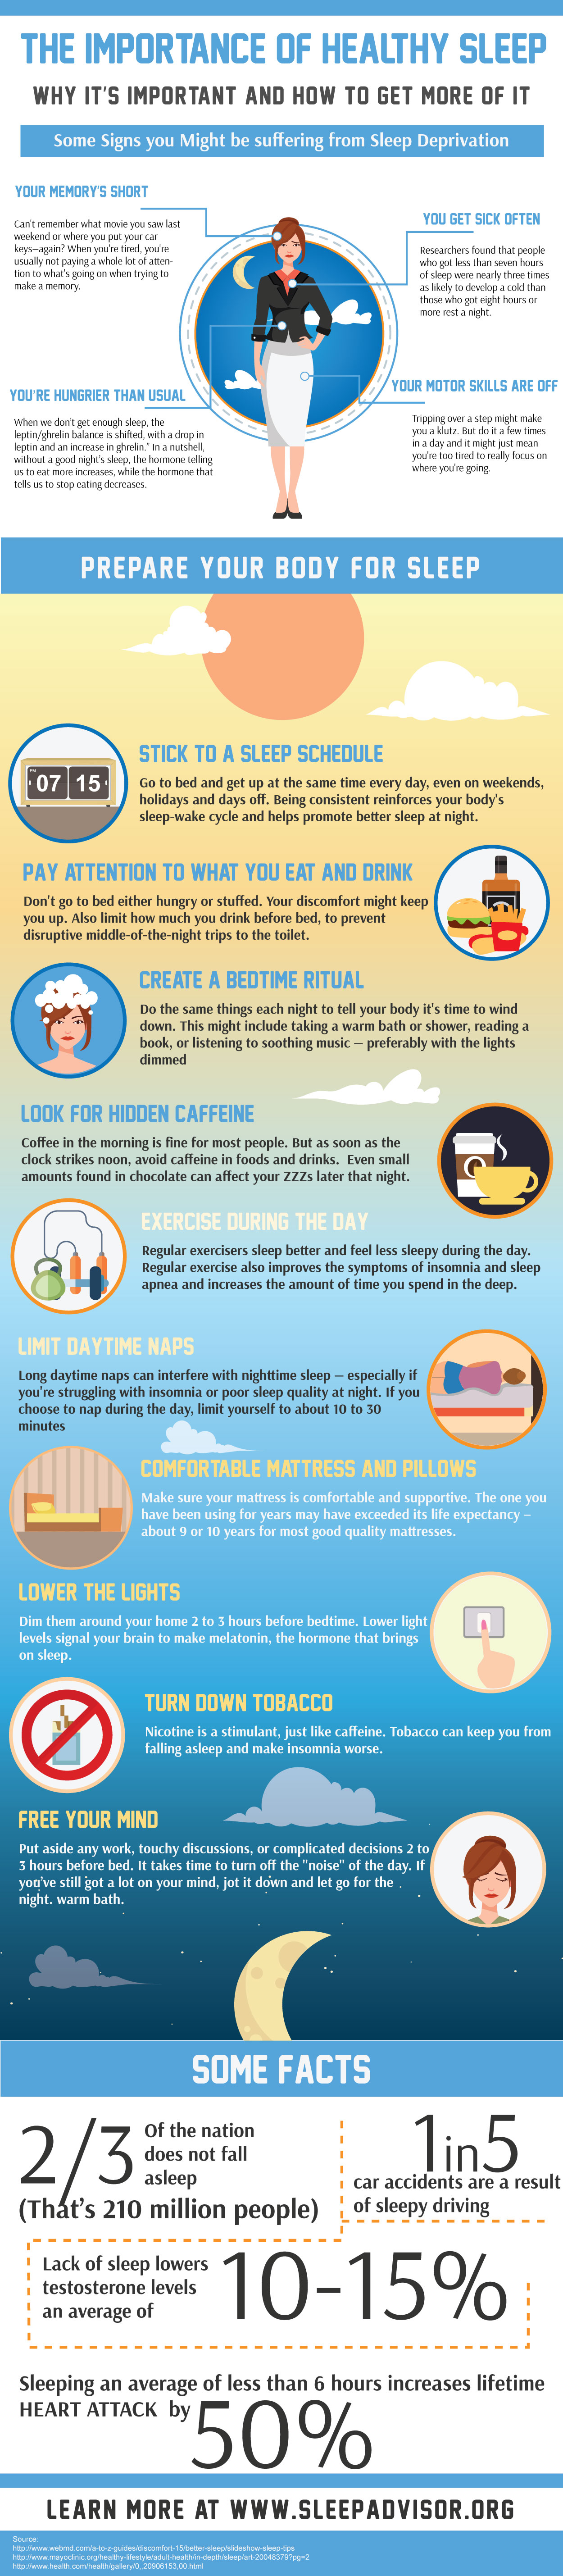 Importance of Healthy Sleep and How to Get More of It